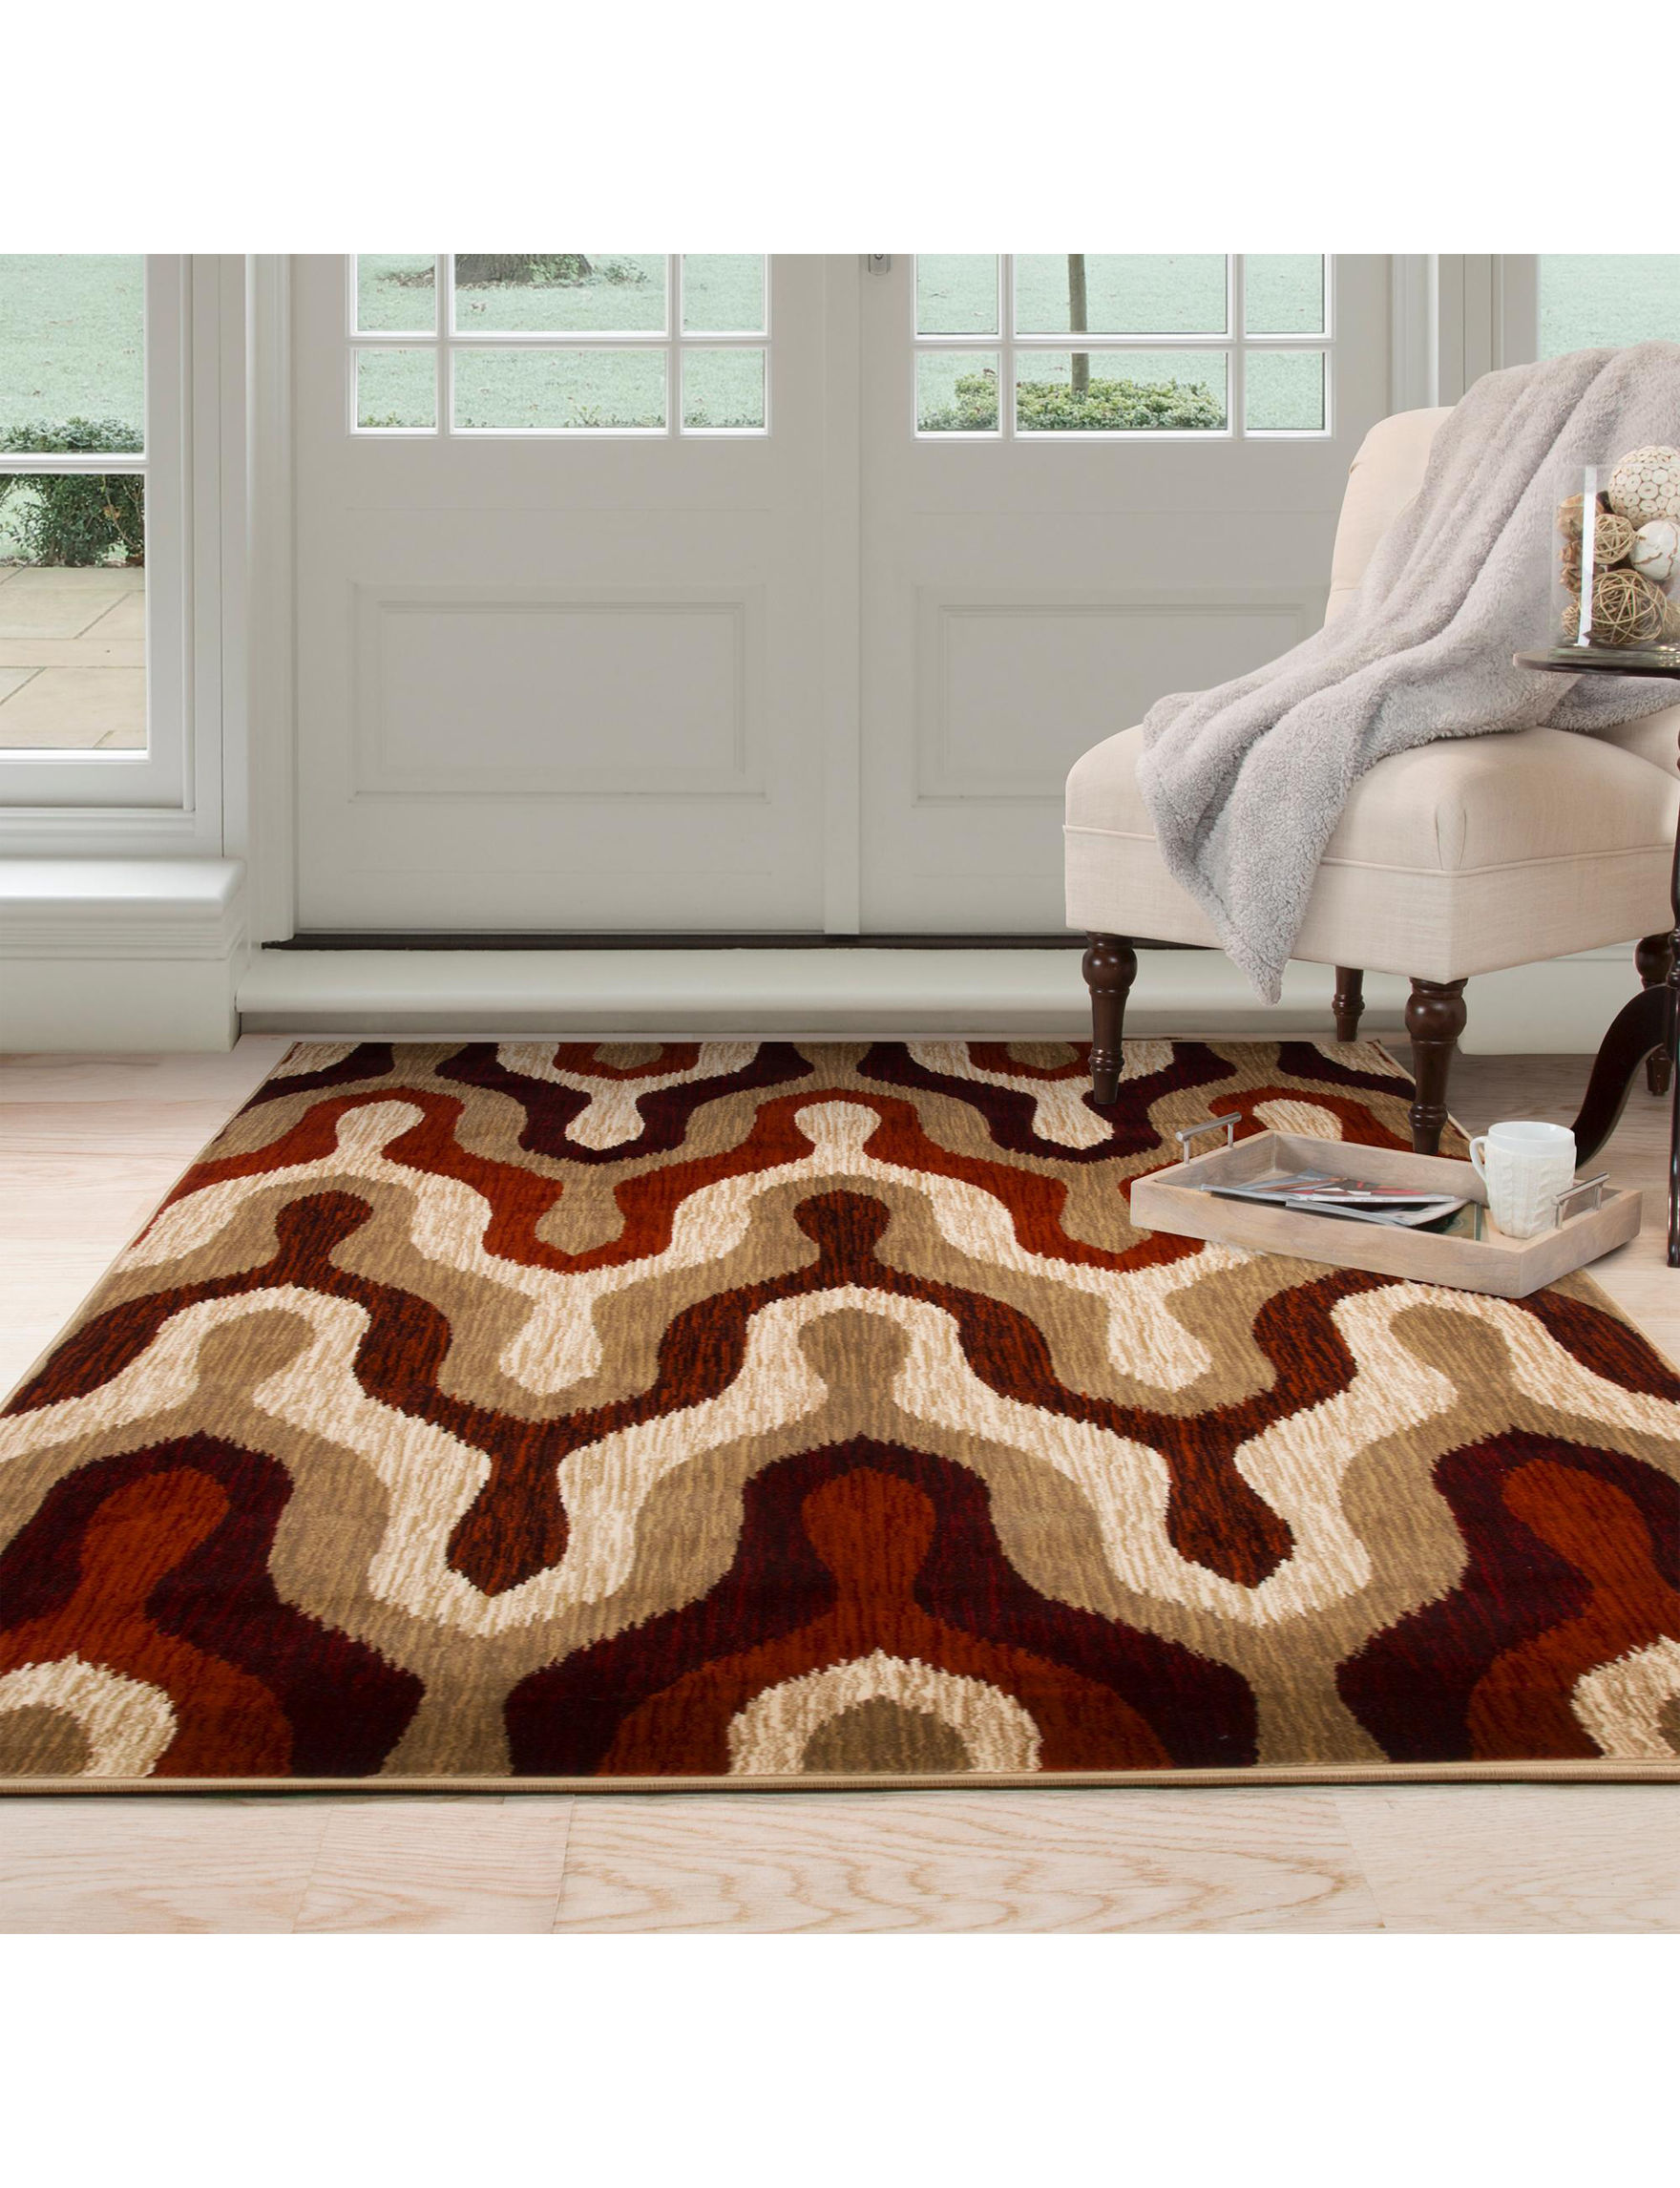 Lavish Home Burgundy/Tan Area Rugs Rugs